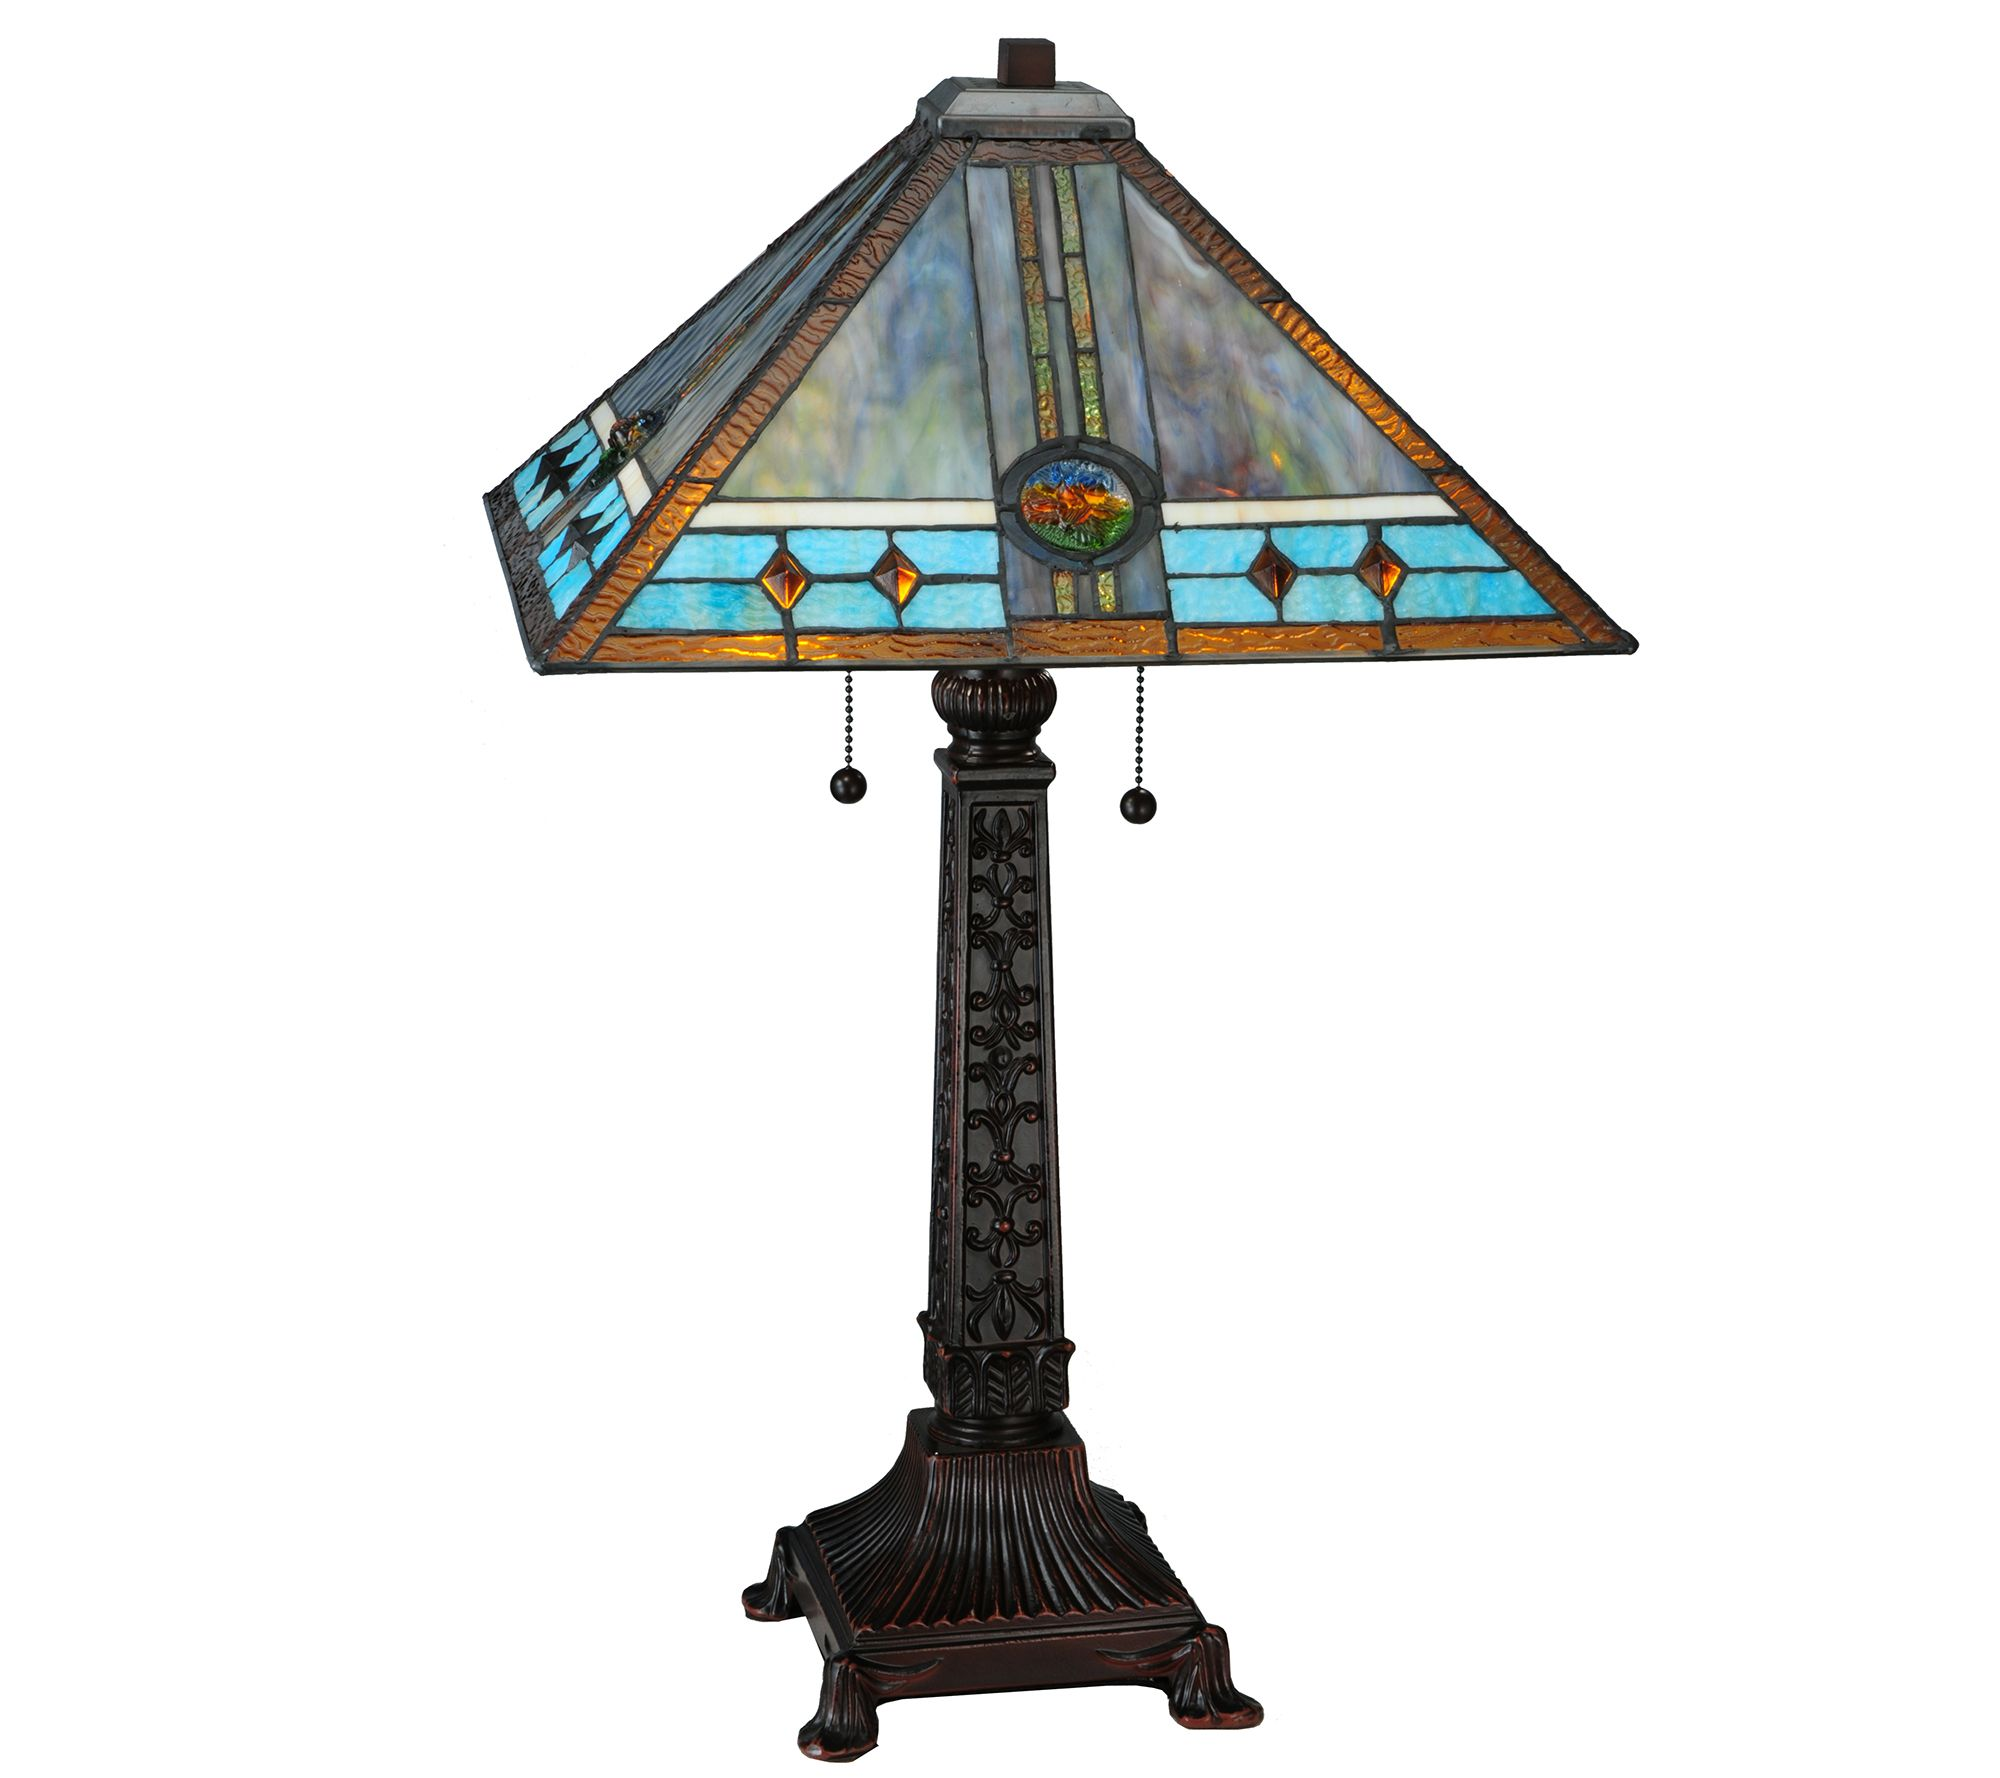 Meyda tiffany style mission rose table lamp qvccom for Tiffany floor lamp qvc